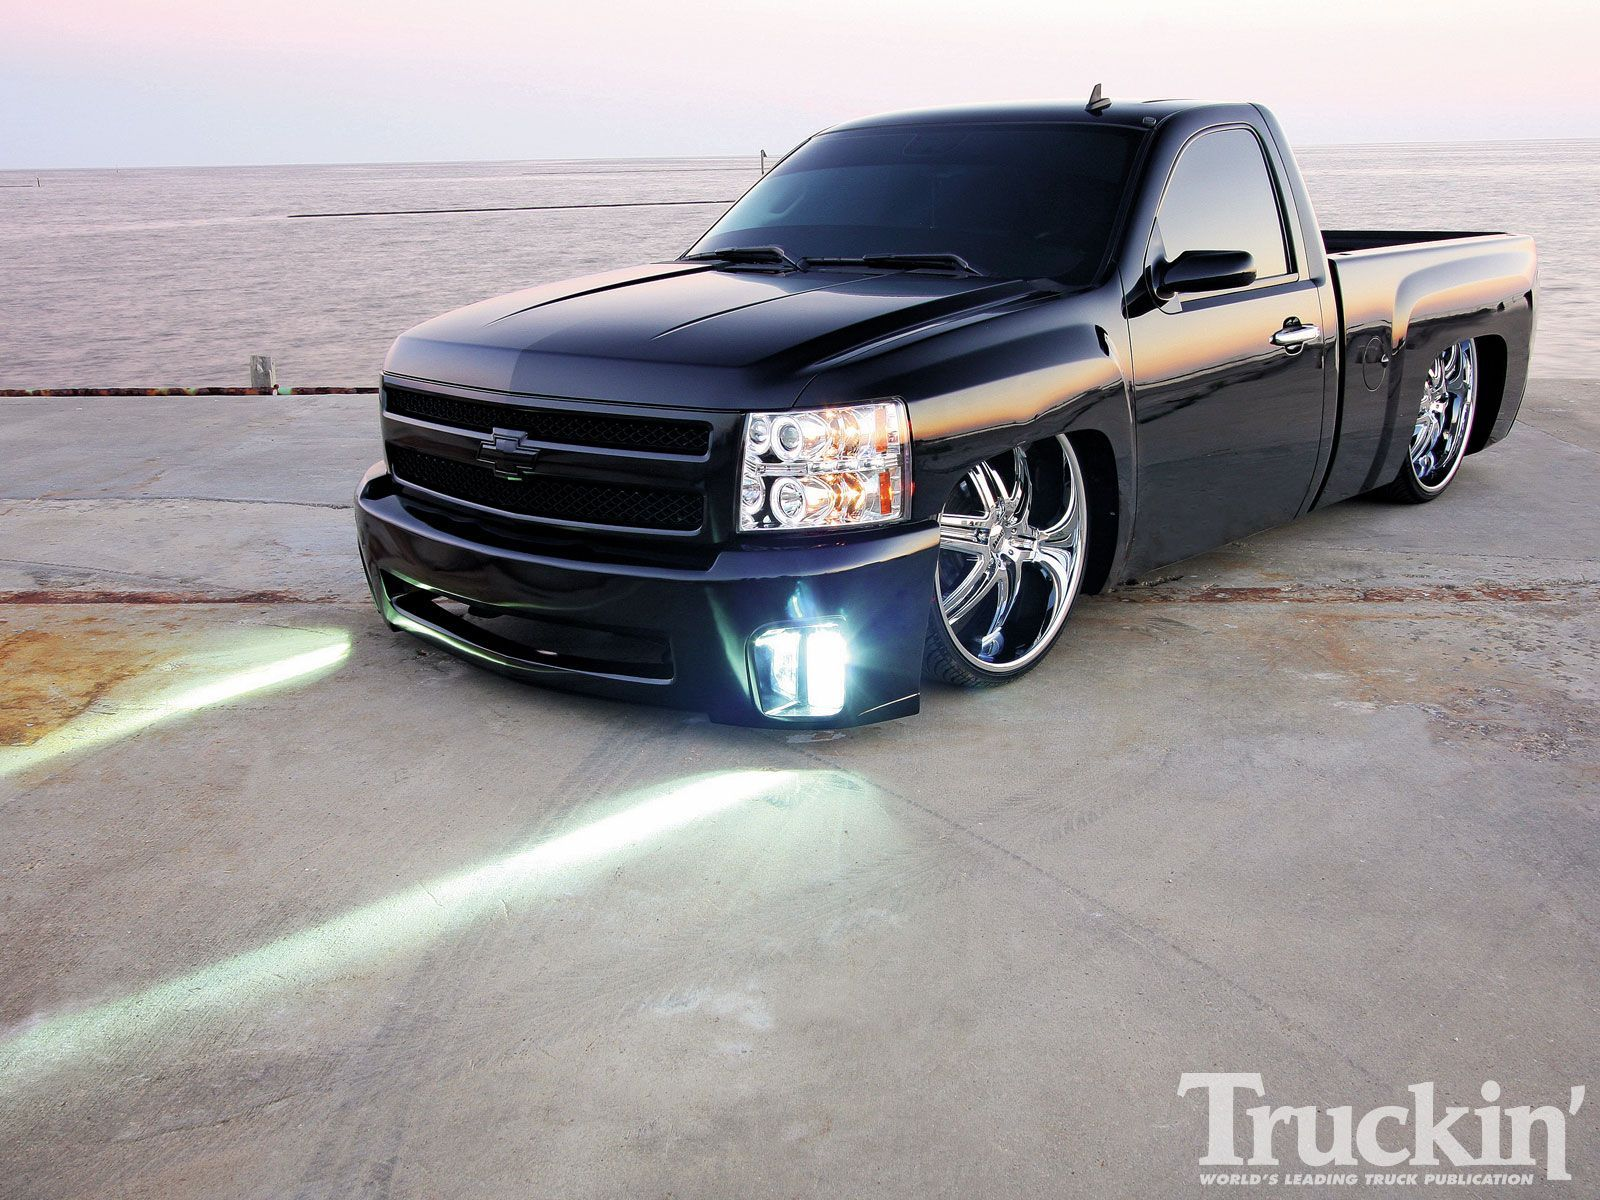 Check out this 2008 chevy silverado with slam specialties re7 airbags halo projector headlights 26 inch rims2008